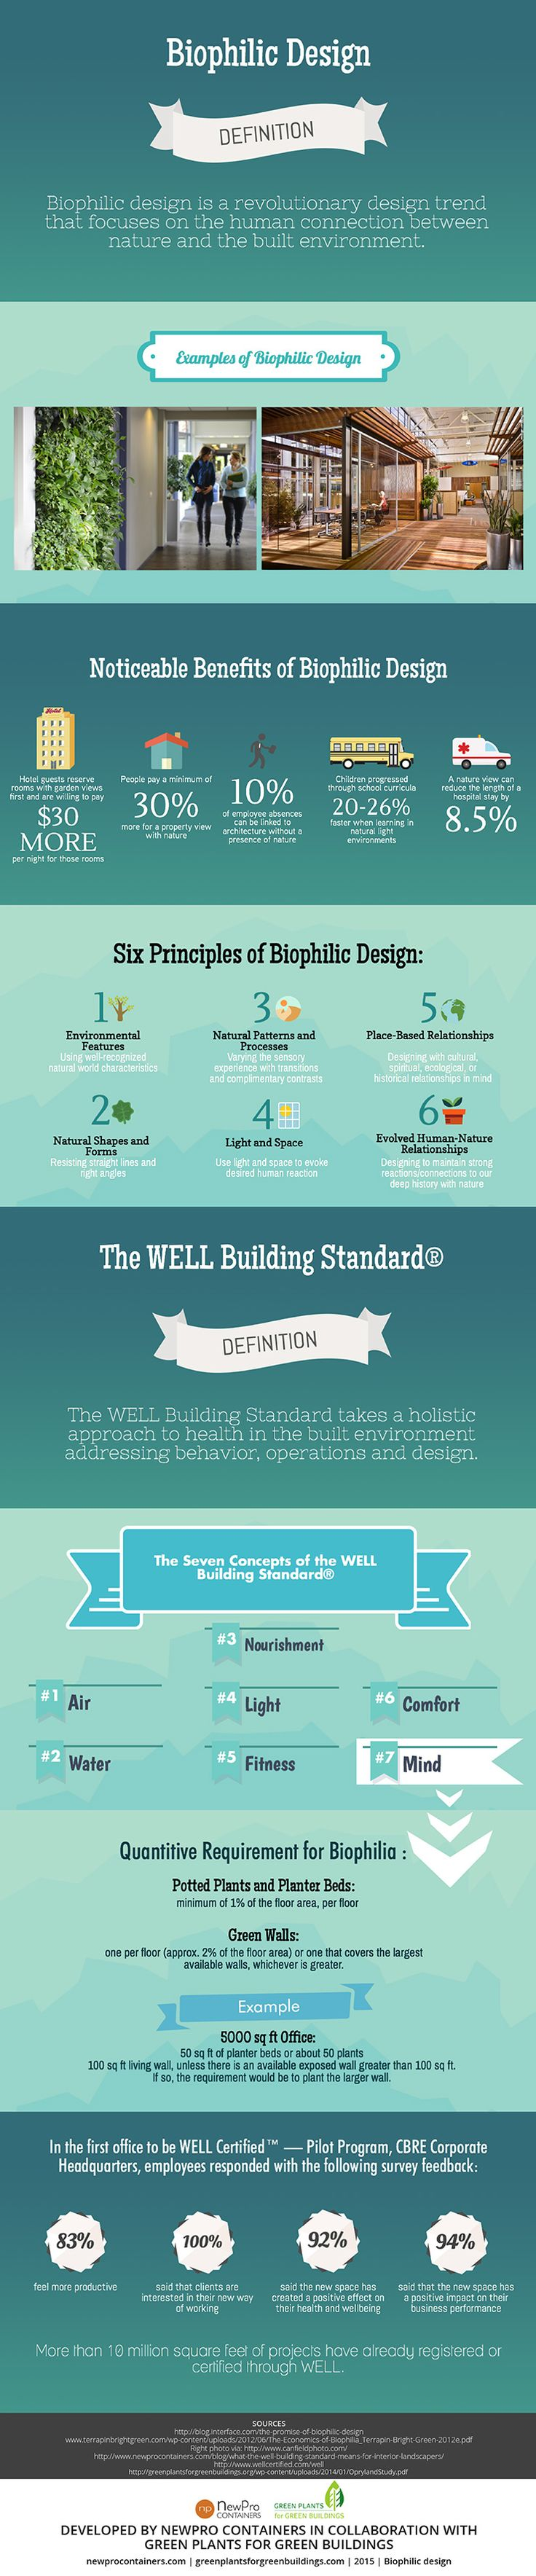 Introduction to Biophilic Design & The WELL Building Standard